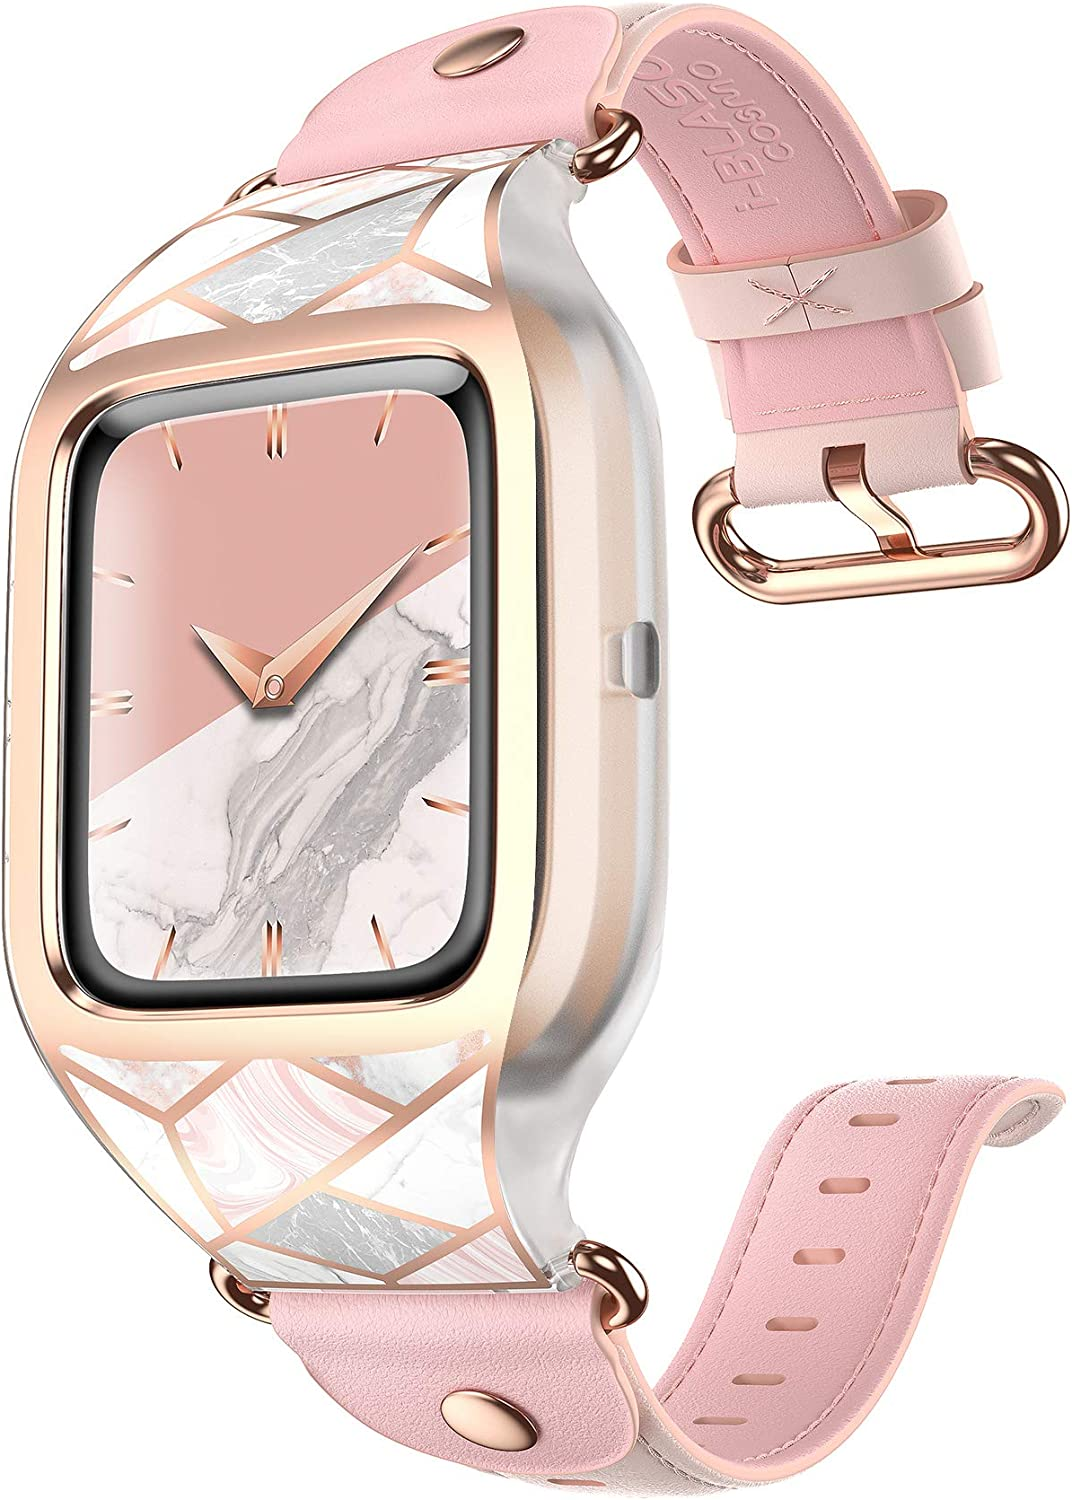 i-Blason Band Designed for Fitbit Versa 2, [Cosmo] Stylish Sporty Protective Case with Adjustable Leather Wristband (Marble)